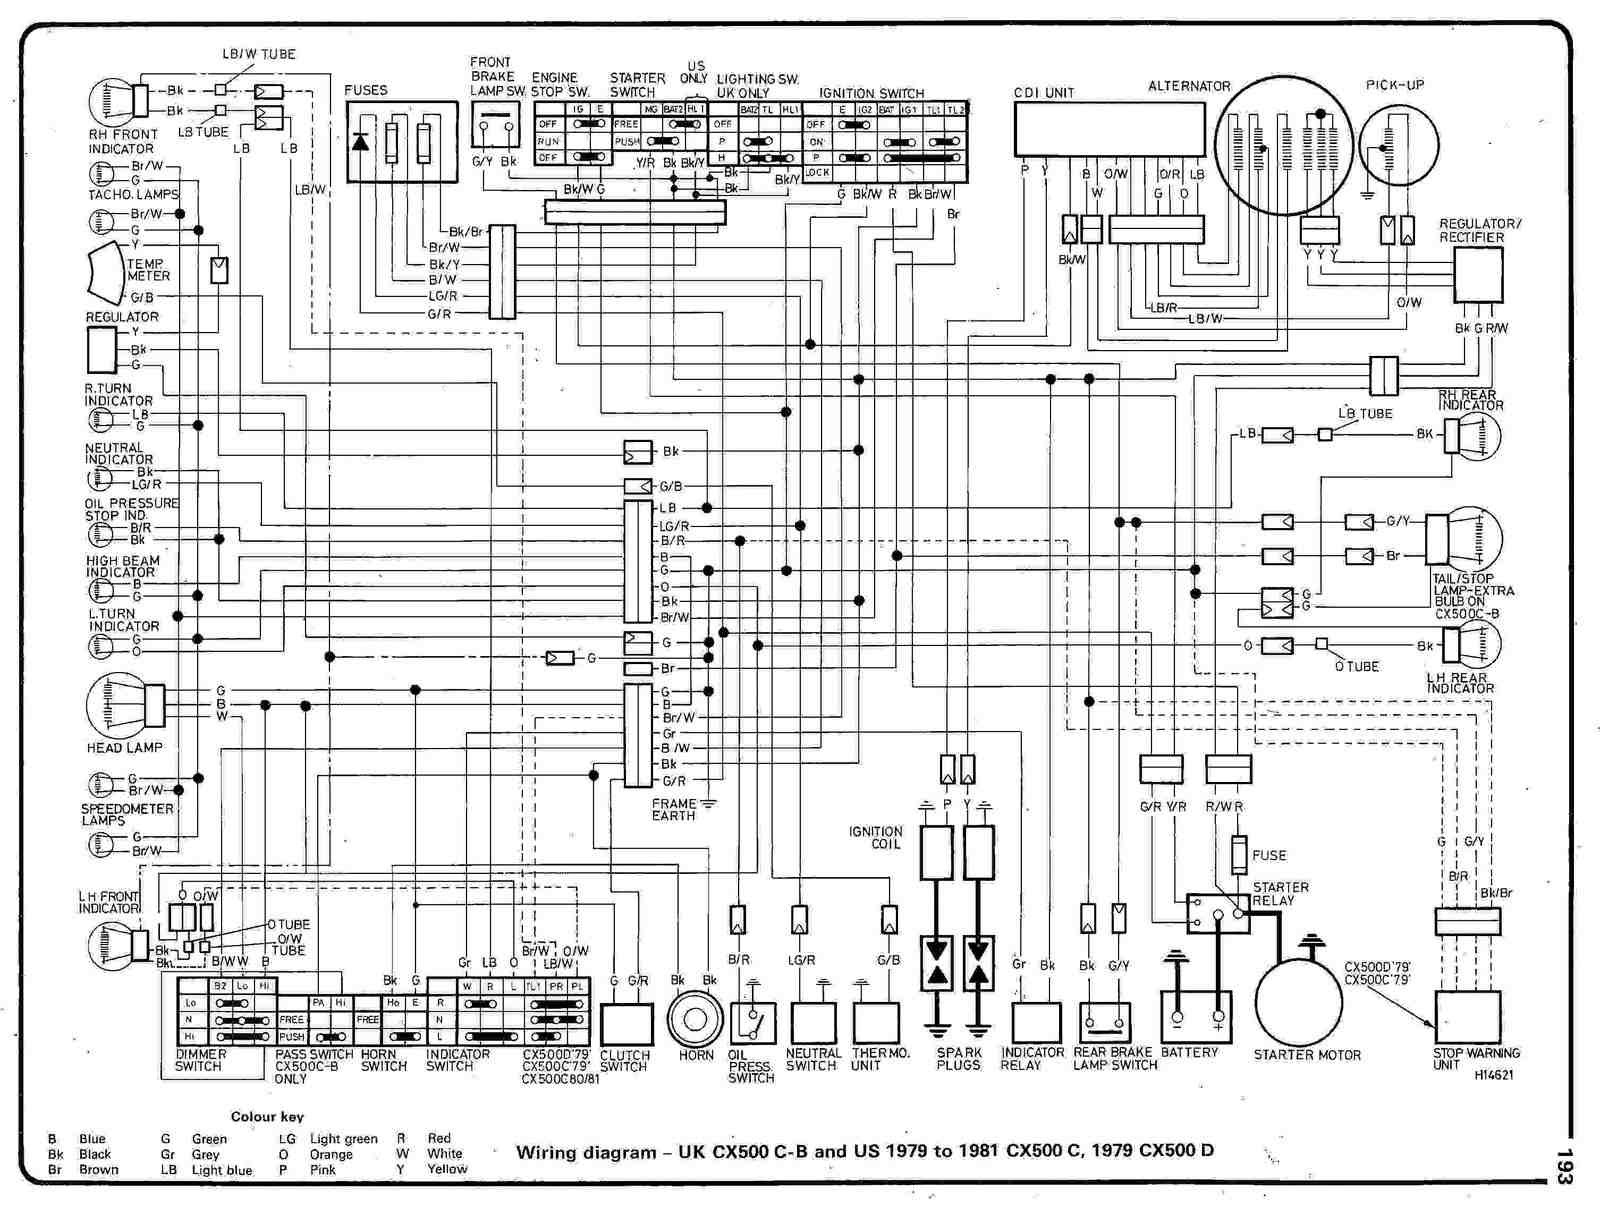 Honda Vfr 800 Wiring Diagram Example Electrical Wiring Diagram \u2022 VFR  Interceptor 2007 Honda Vfr 800 Wiring Diagram